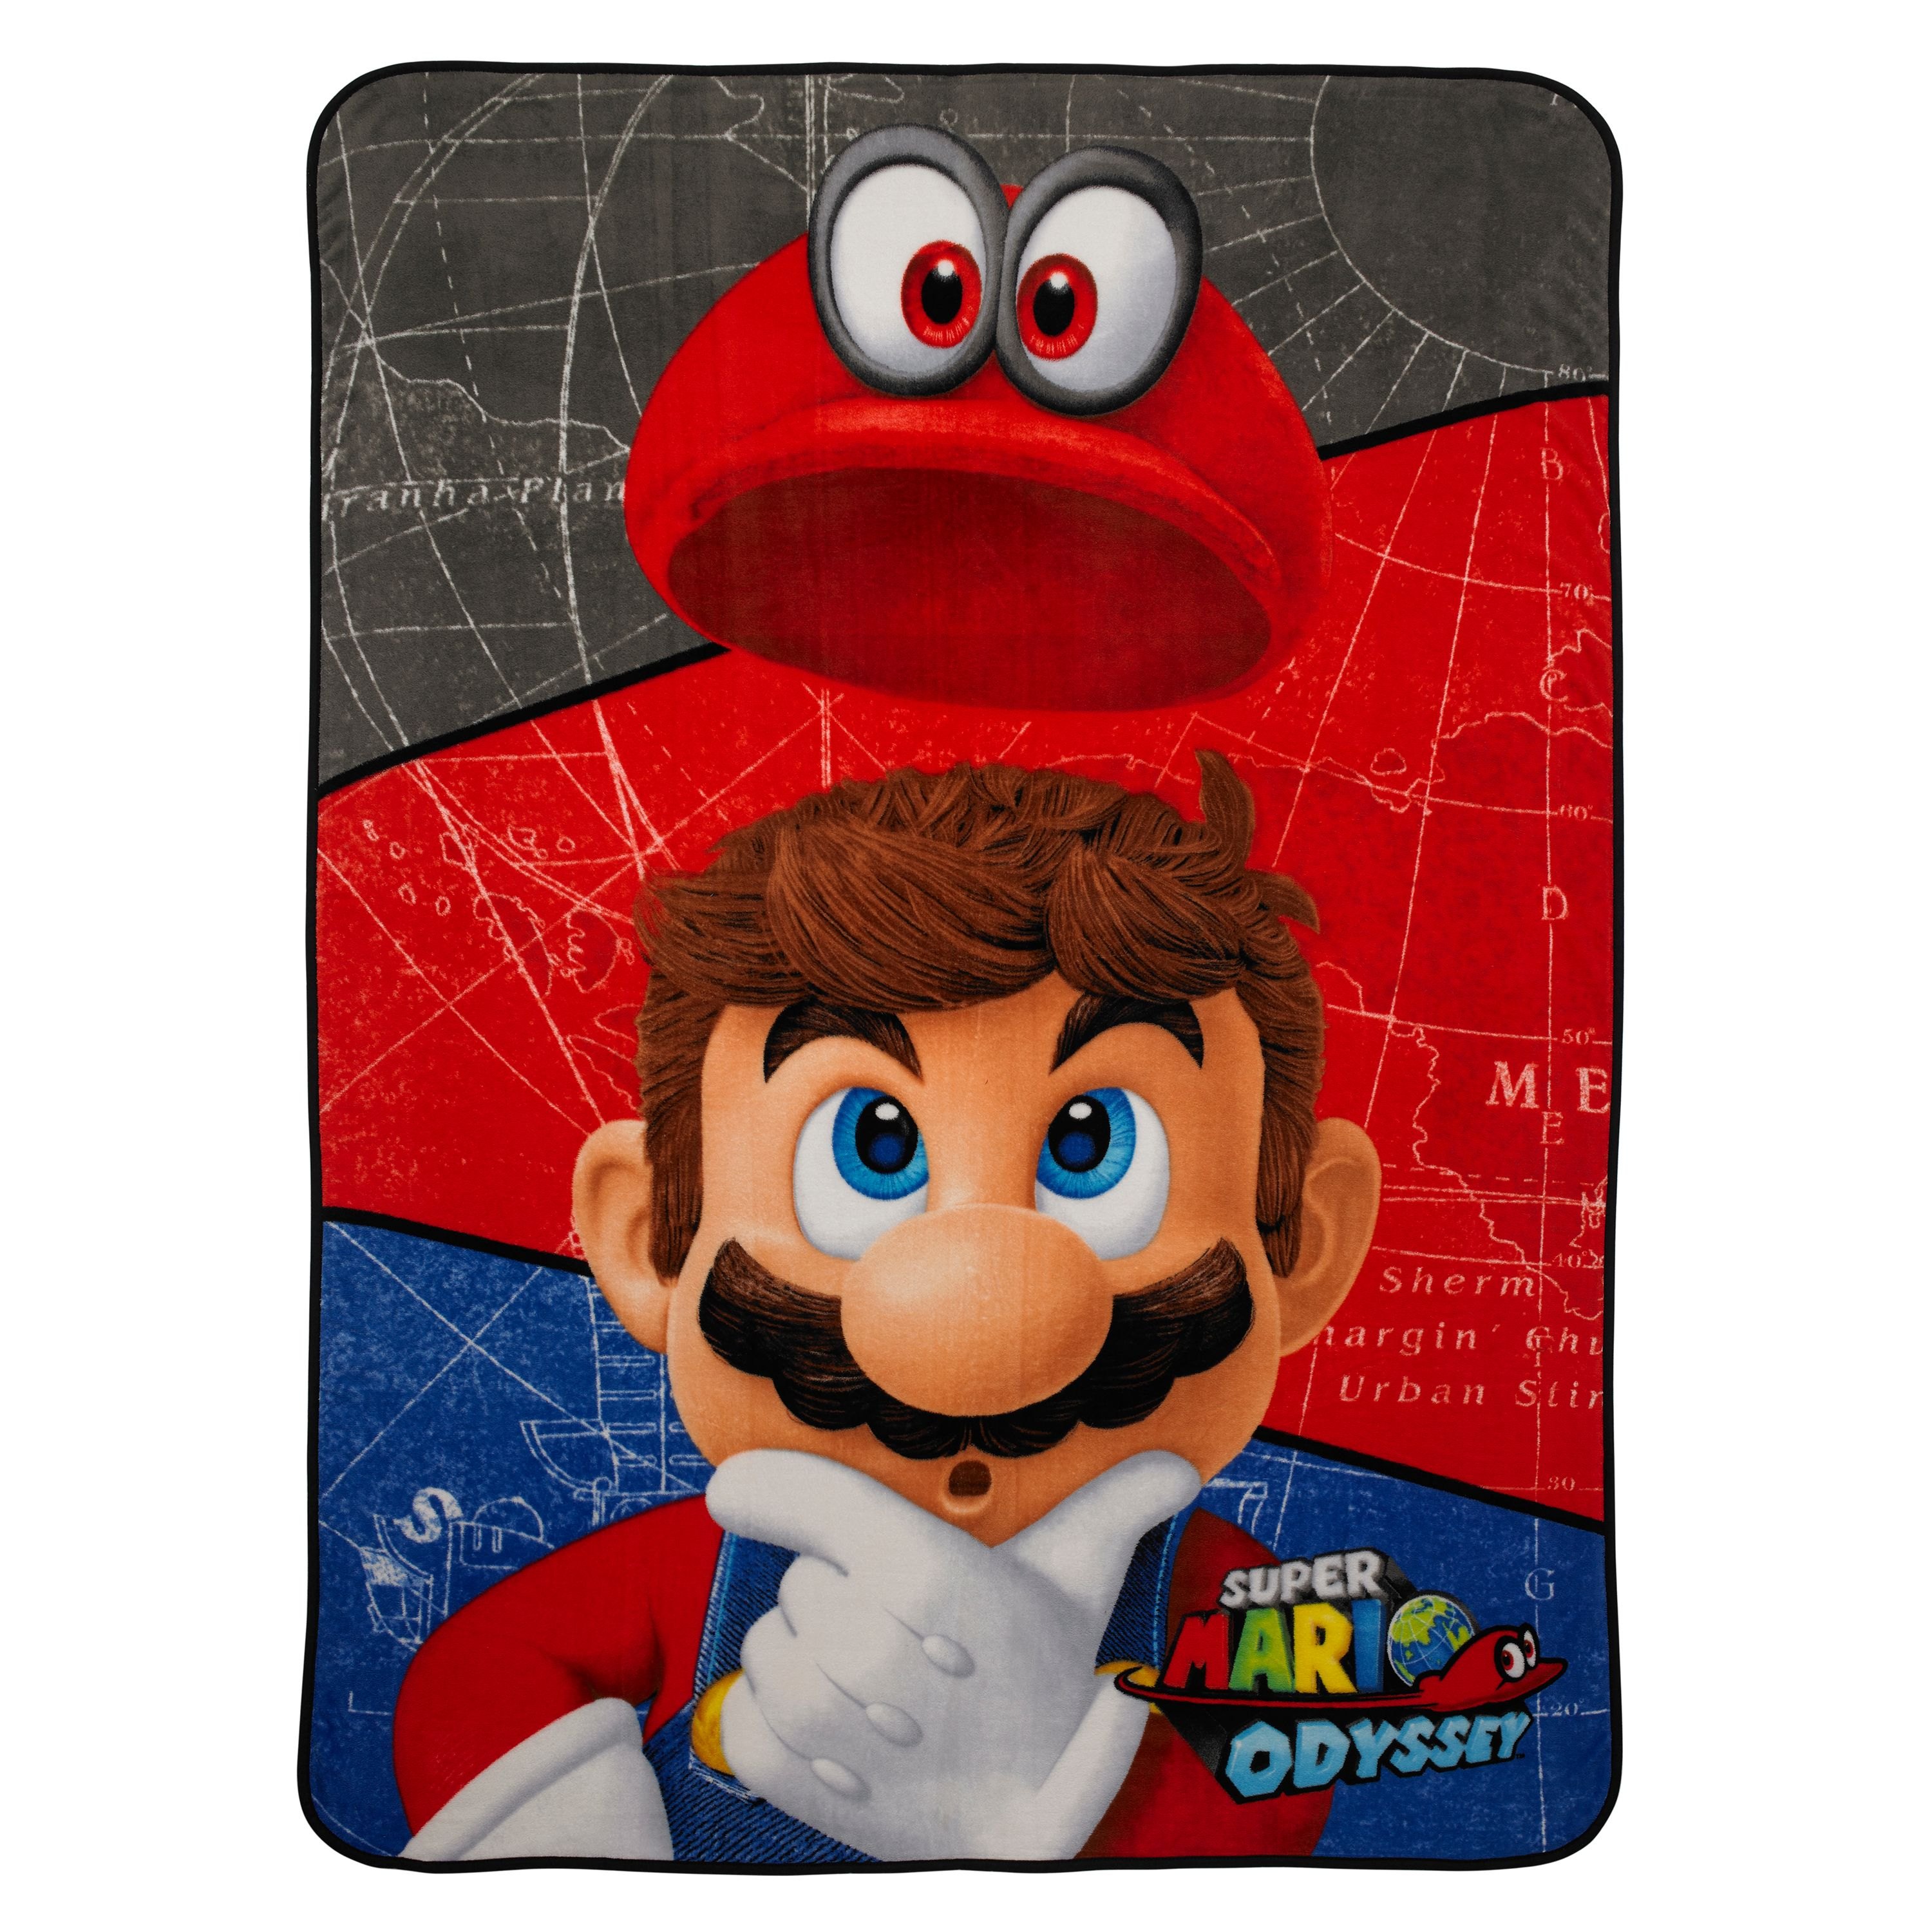 Nintendo Super Mario 'Mario World' Twin Kids Bedding Blanket, 1 Each